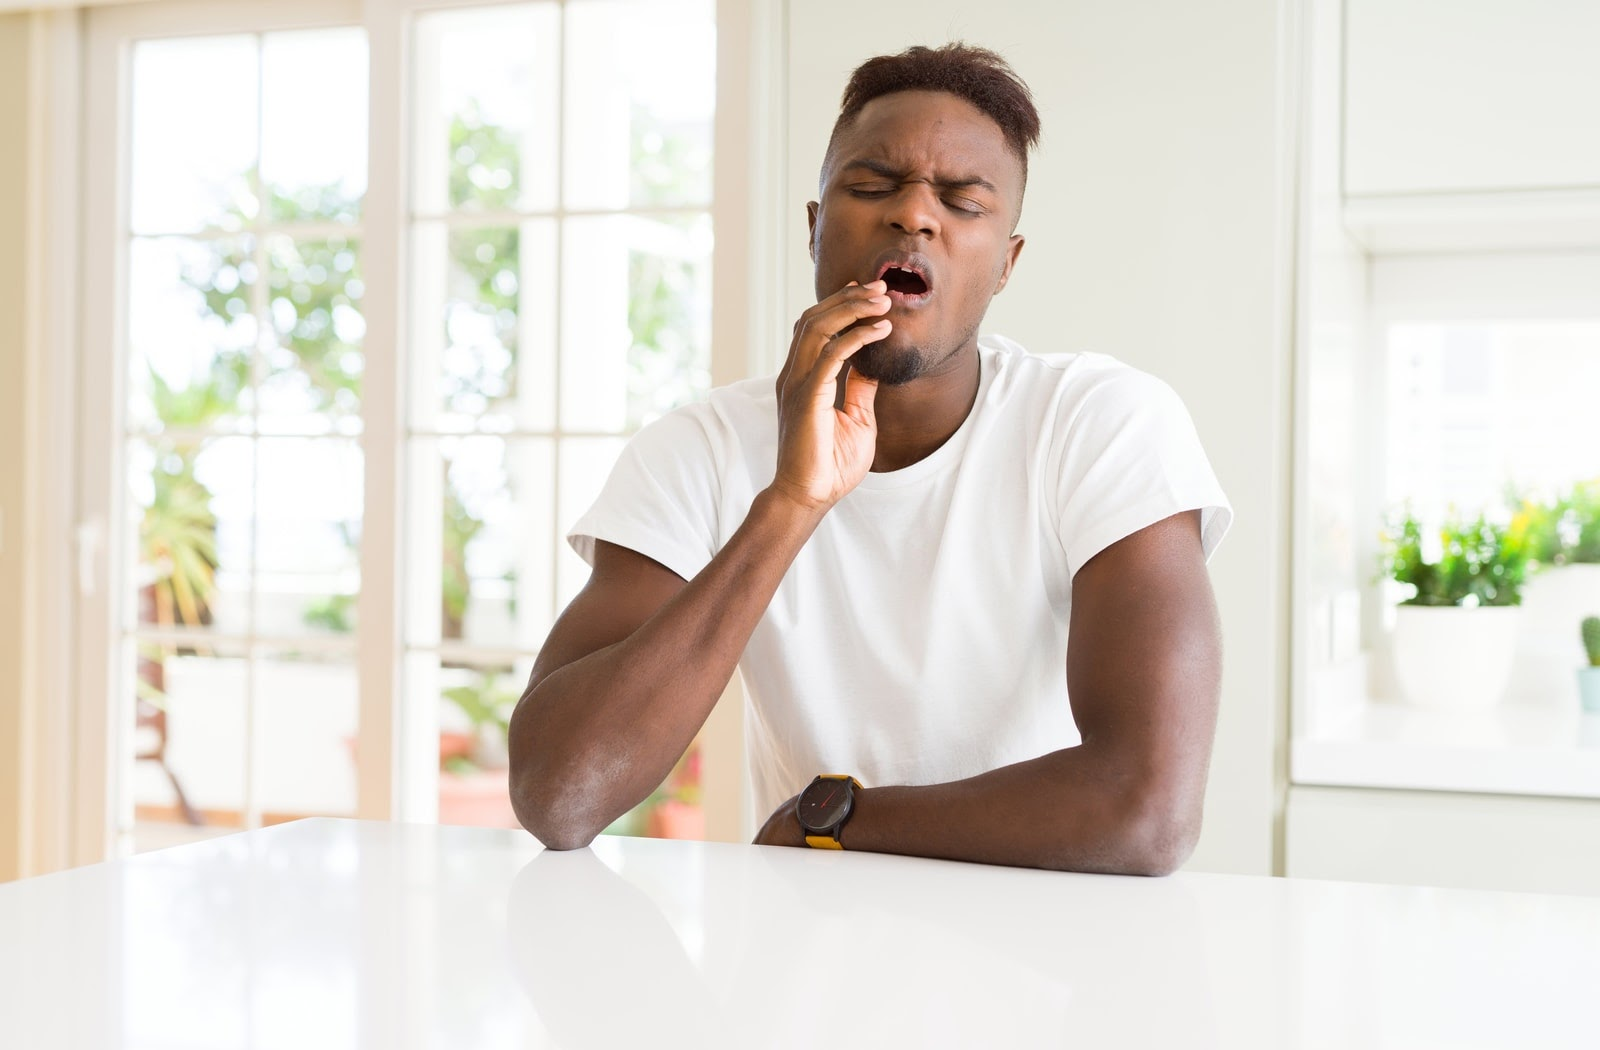 Man sitting at home feeling pain caused by his wisdom tooth infection